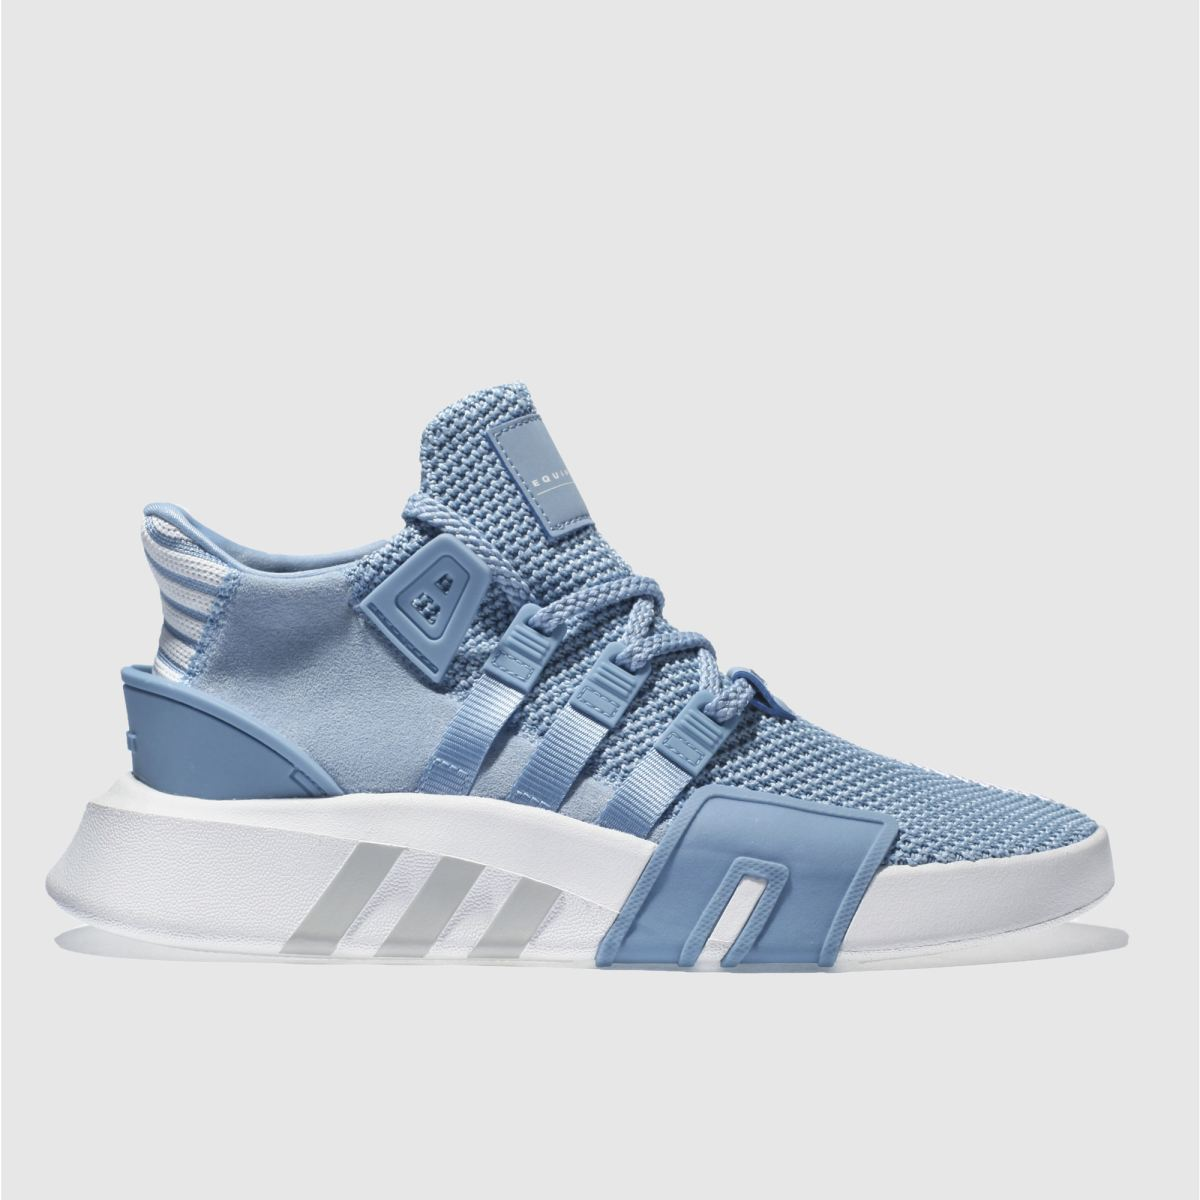 Adidas Pale Blue Eqt Bask Adv Trainers